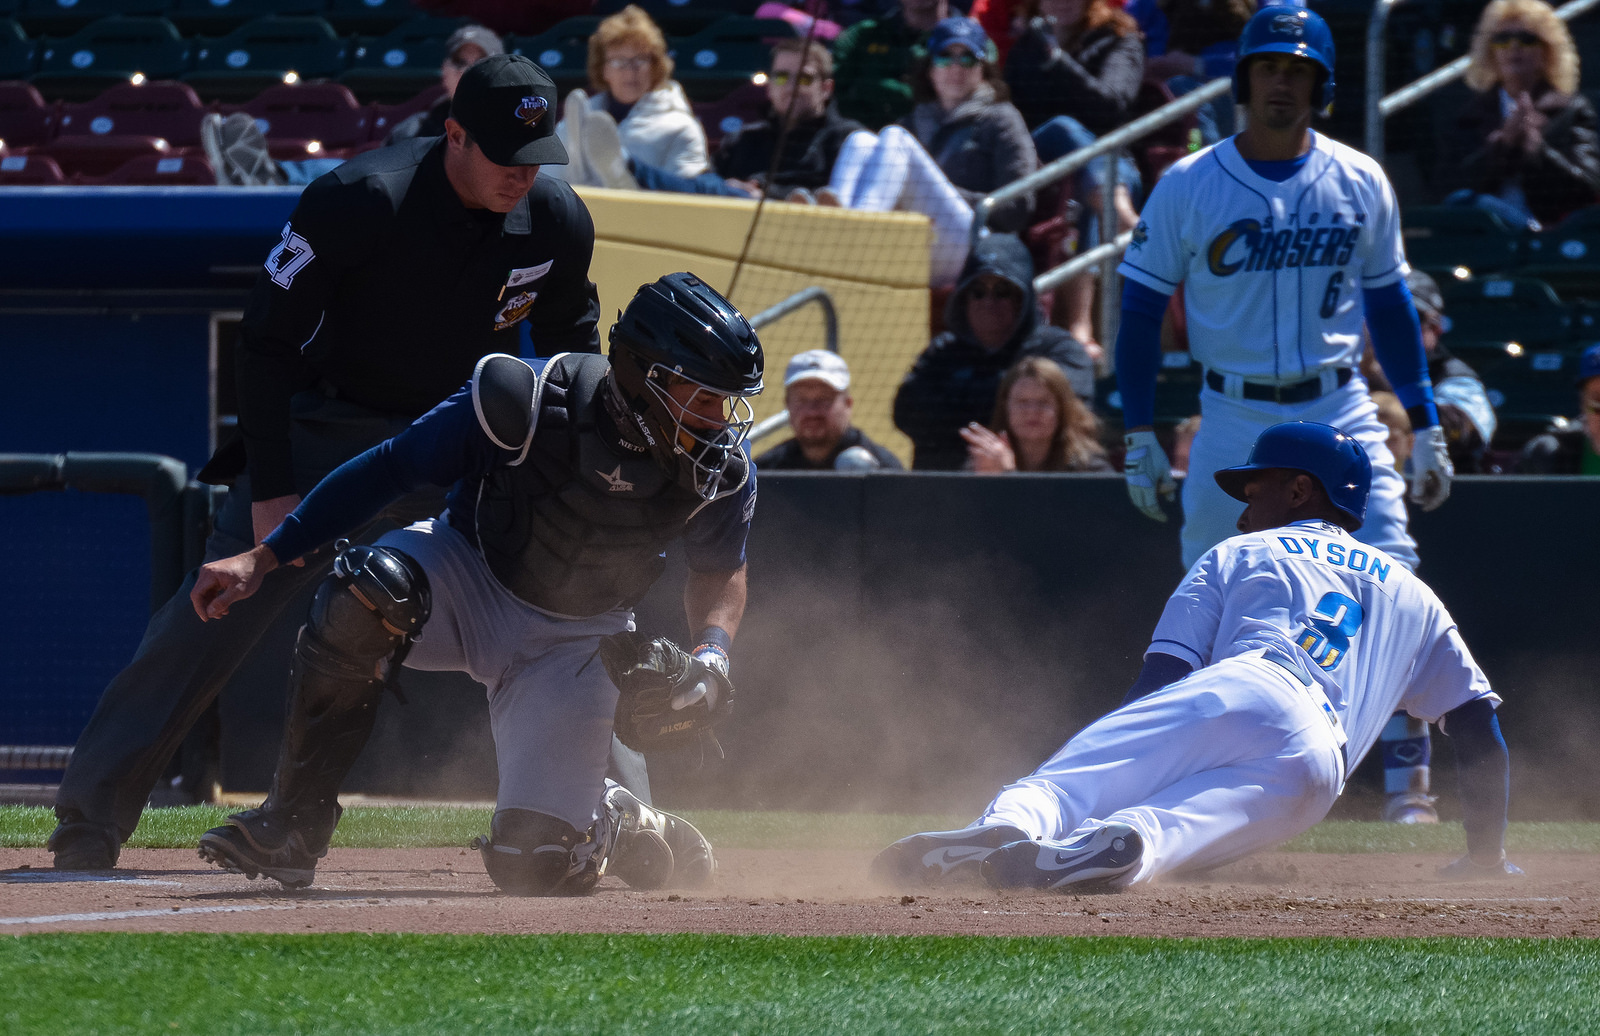 Jarrod Dyson joined the Storm Chasers on a rehab assignment.